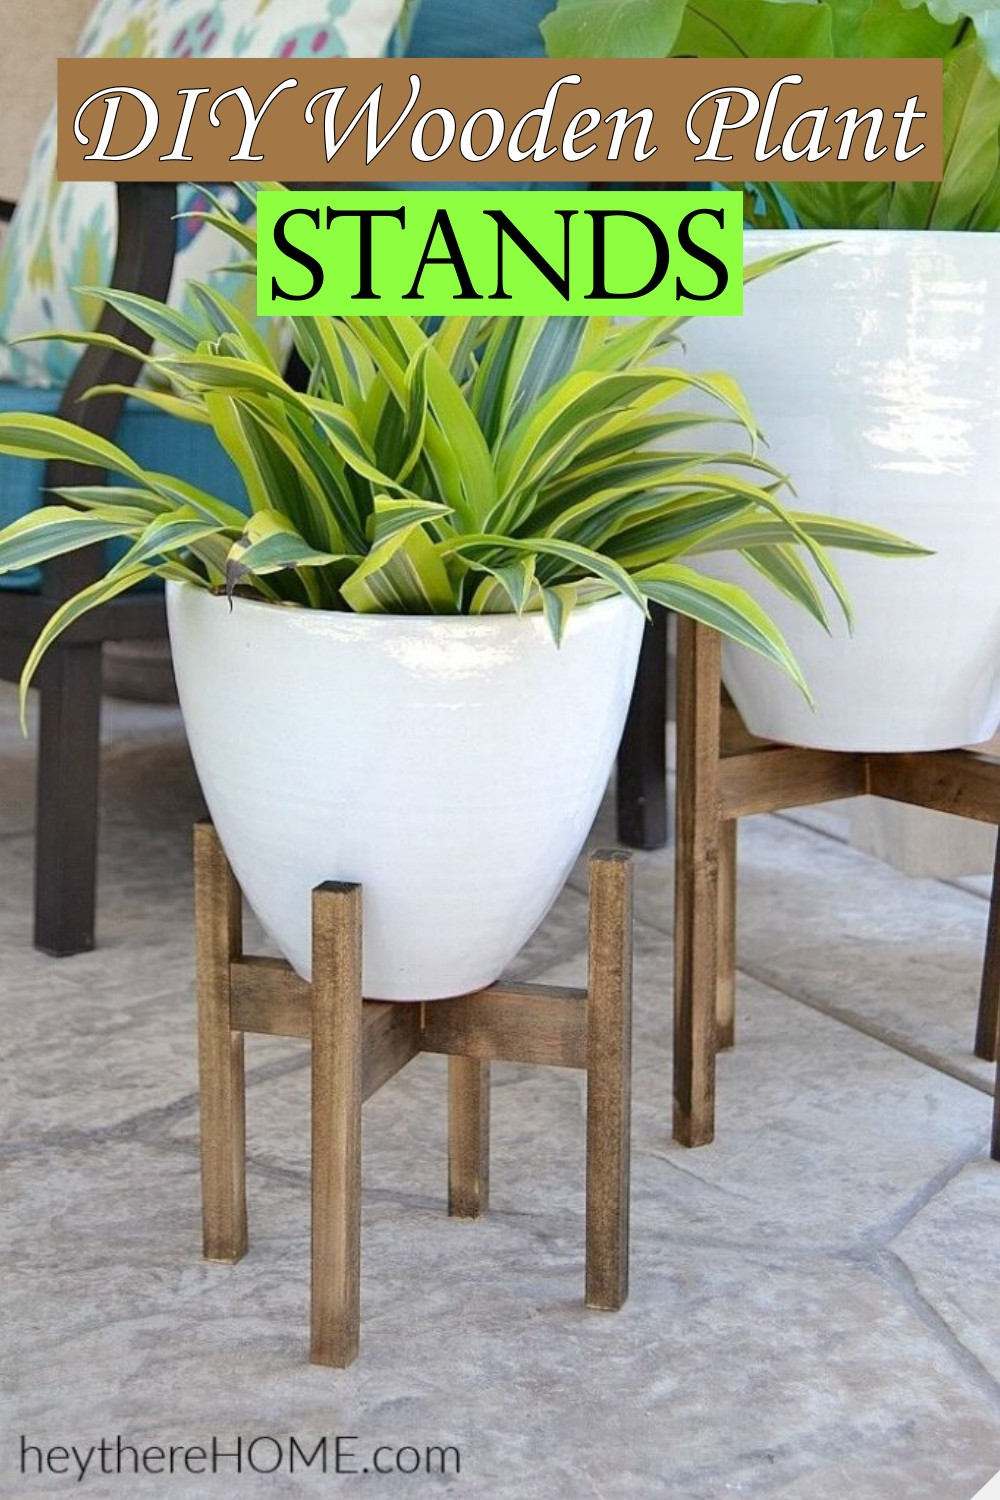 DIY Wooden Plant Stands